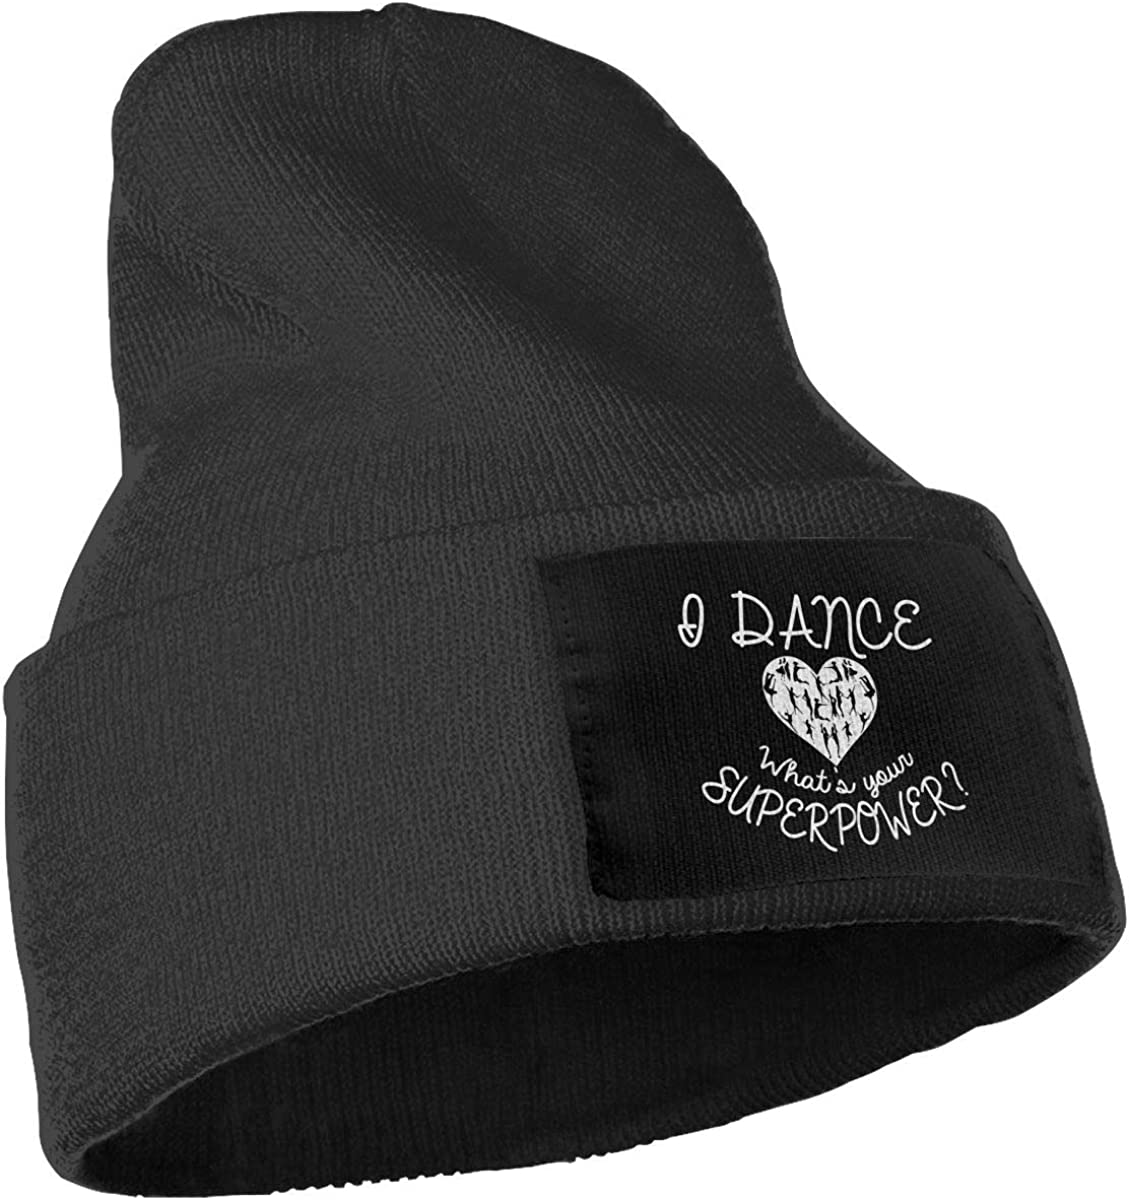 Unisex I Dancer Whats Your Superpower Outdoor Stretch Knit Beanies Hat Soft Winter Skull Caps